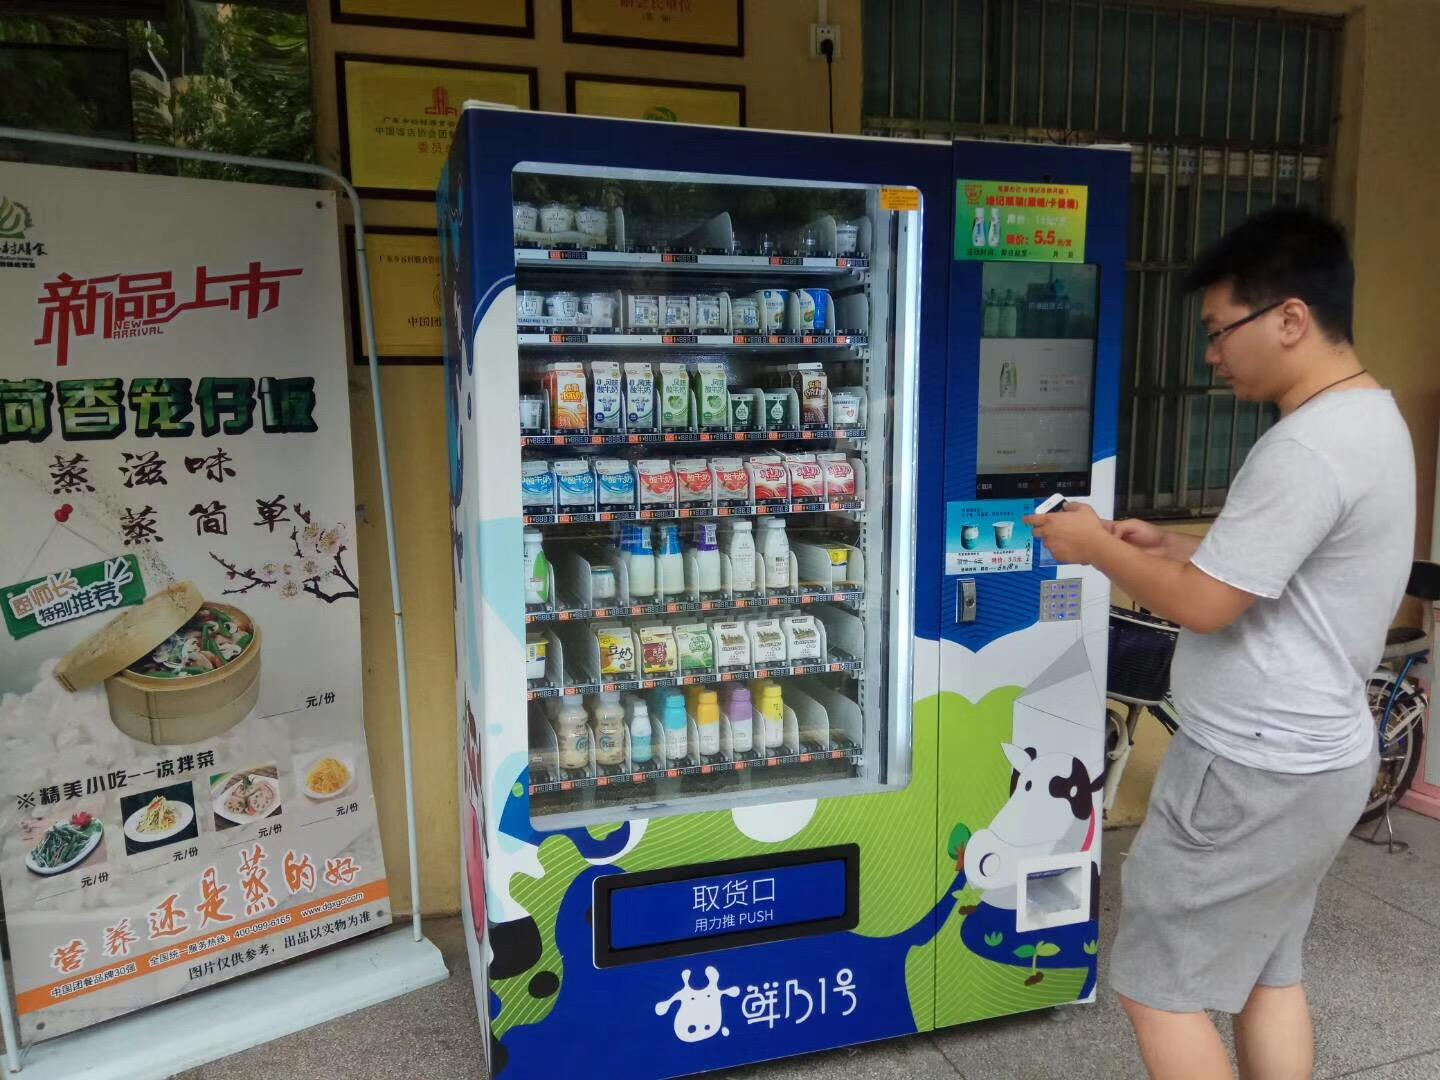 cash banknote payment snack vending machine and drink vending machine